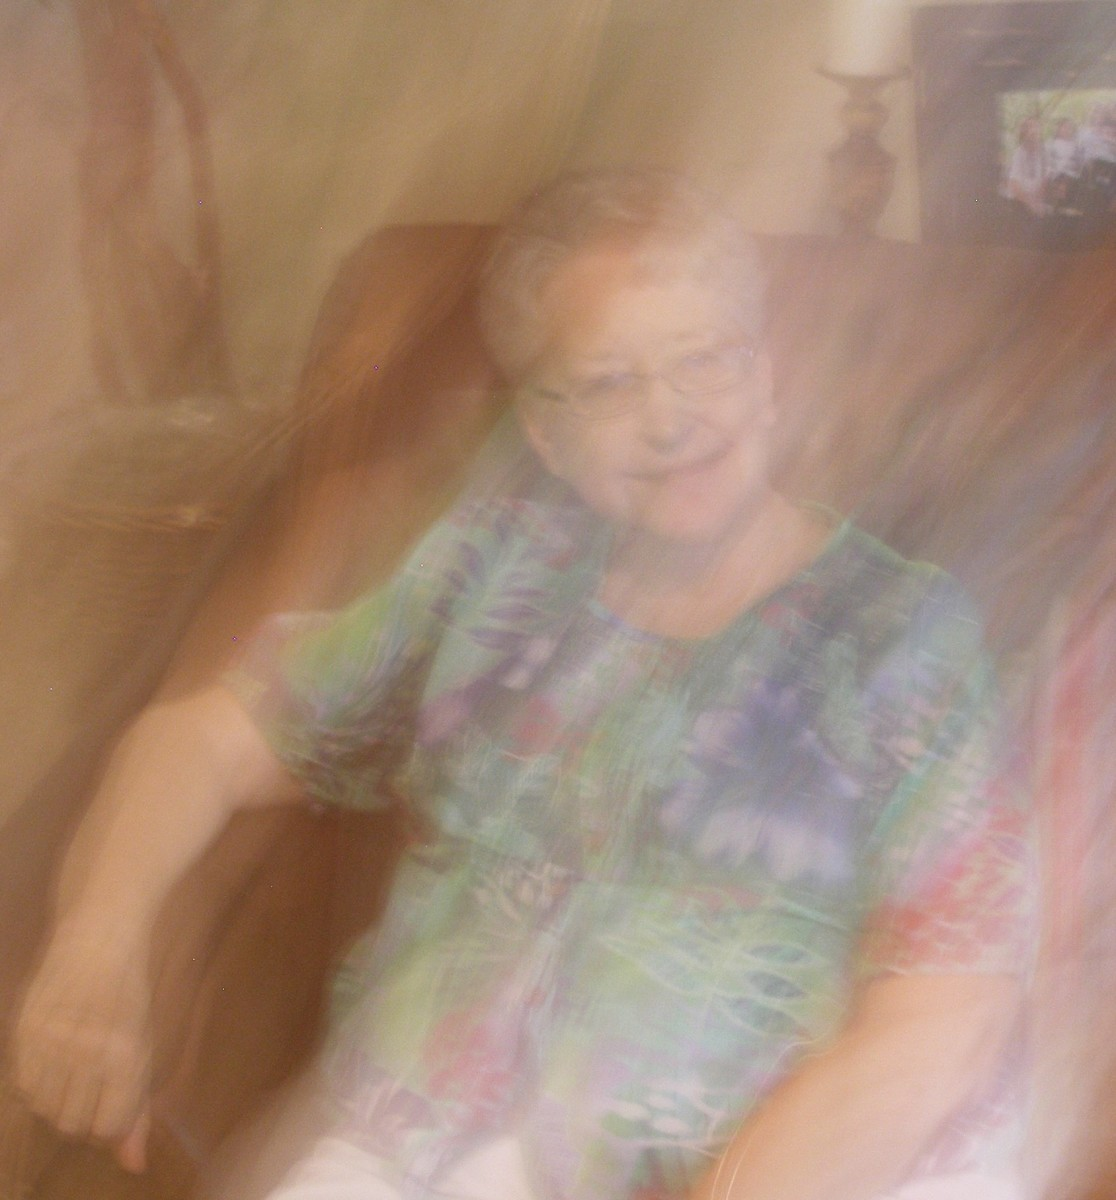 Do you see the ghost that got between Sarah and the camera 7/31/2013